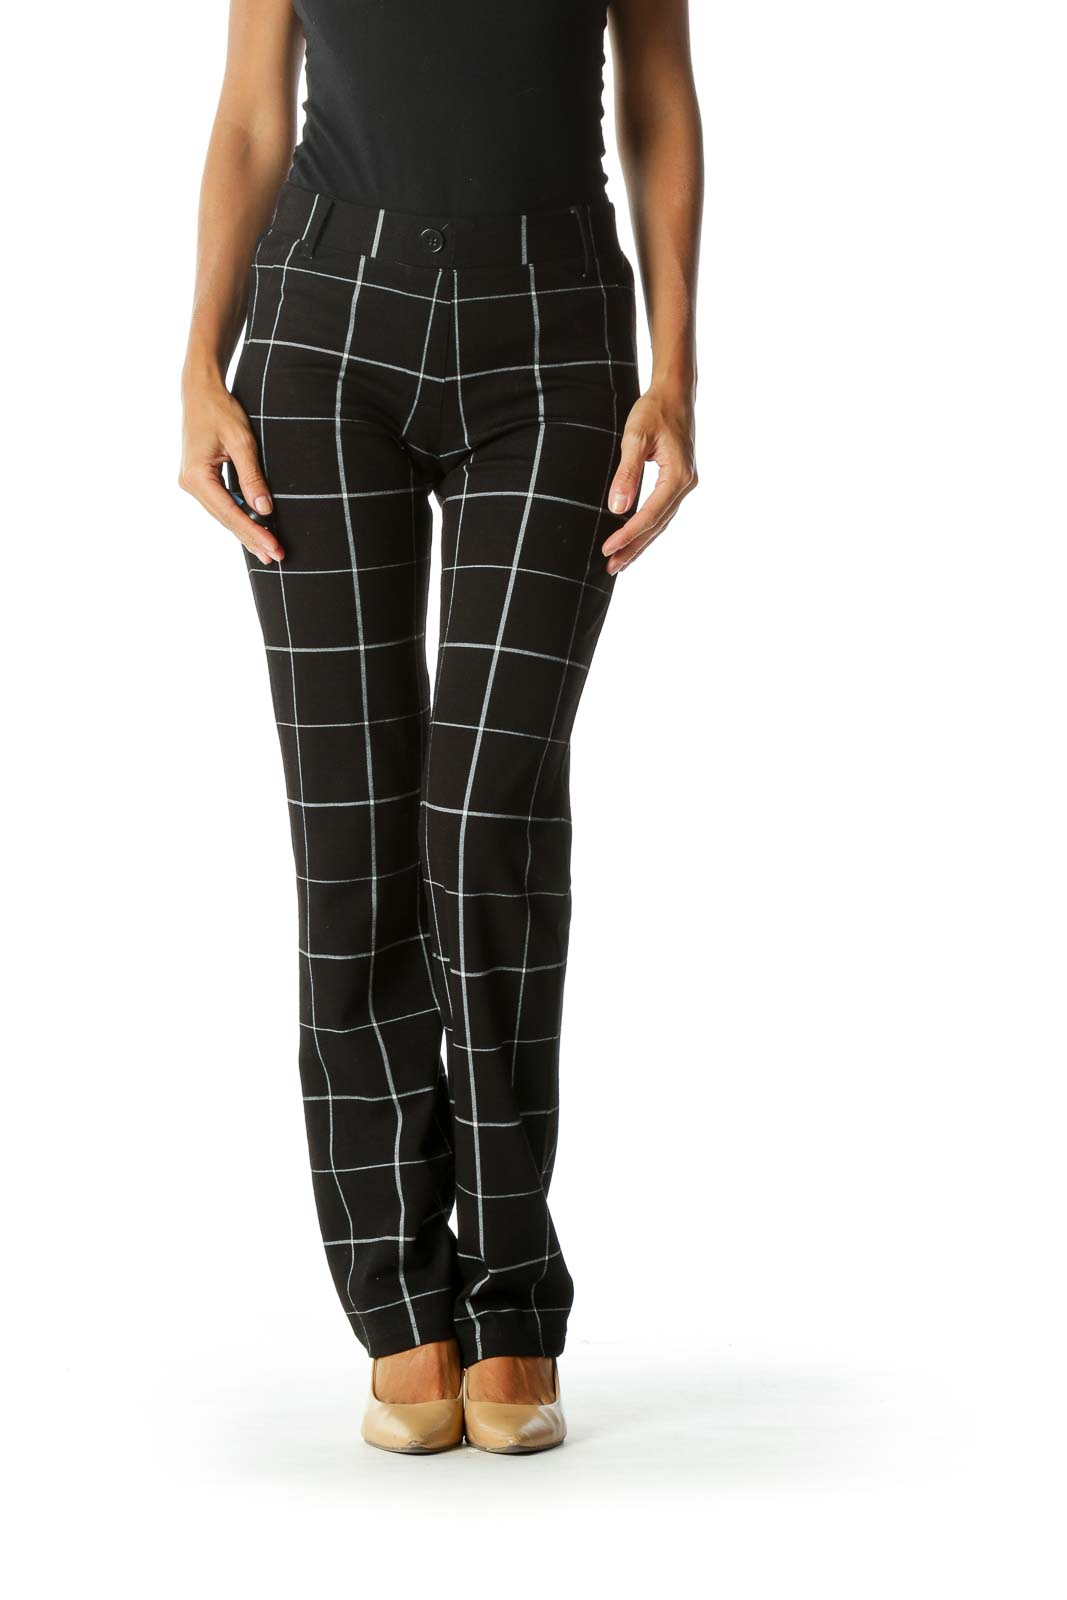 Black White Windowpane Print Elastic Waist Stretch Pull-On Pants